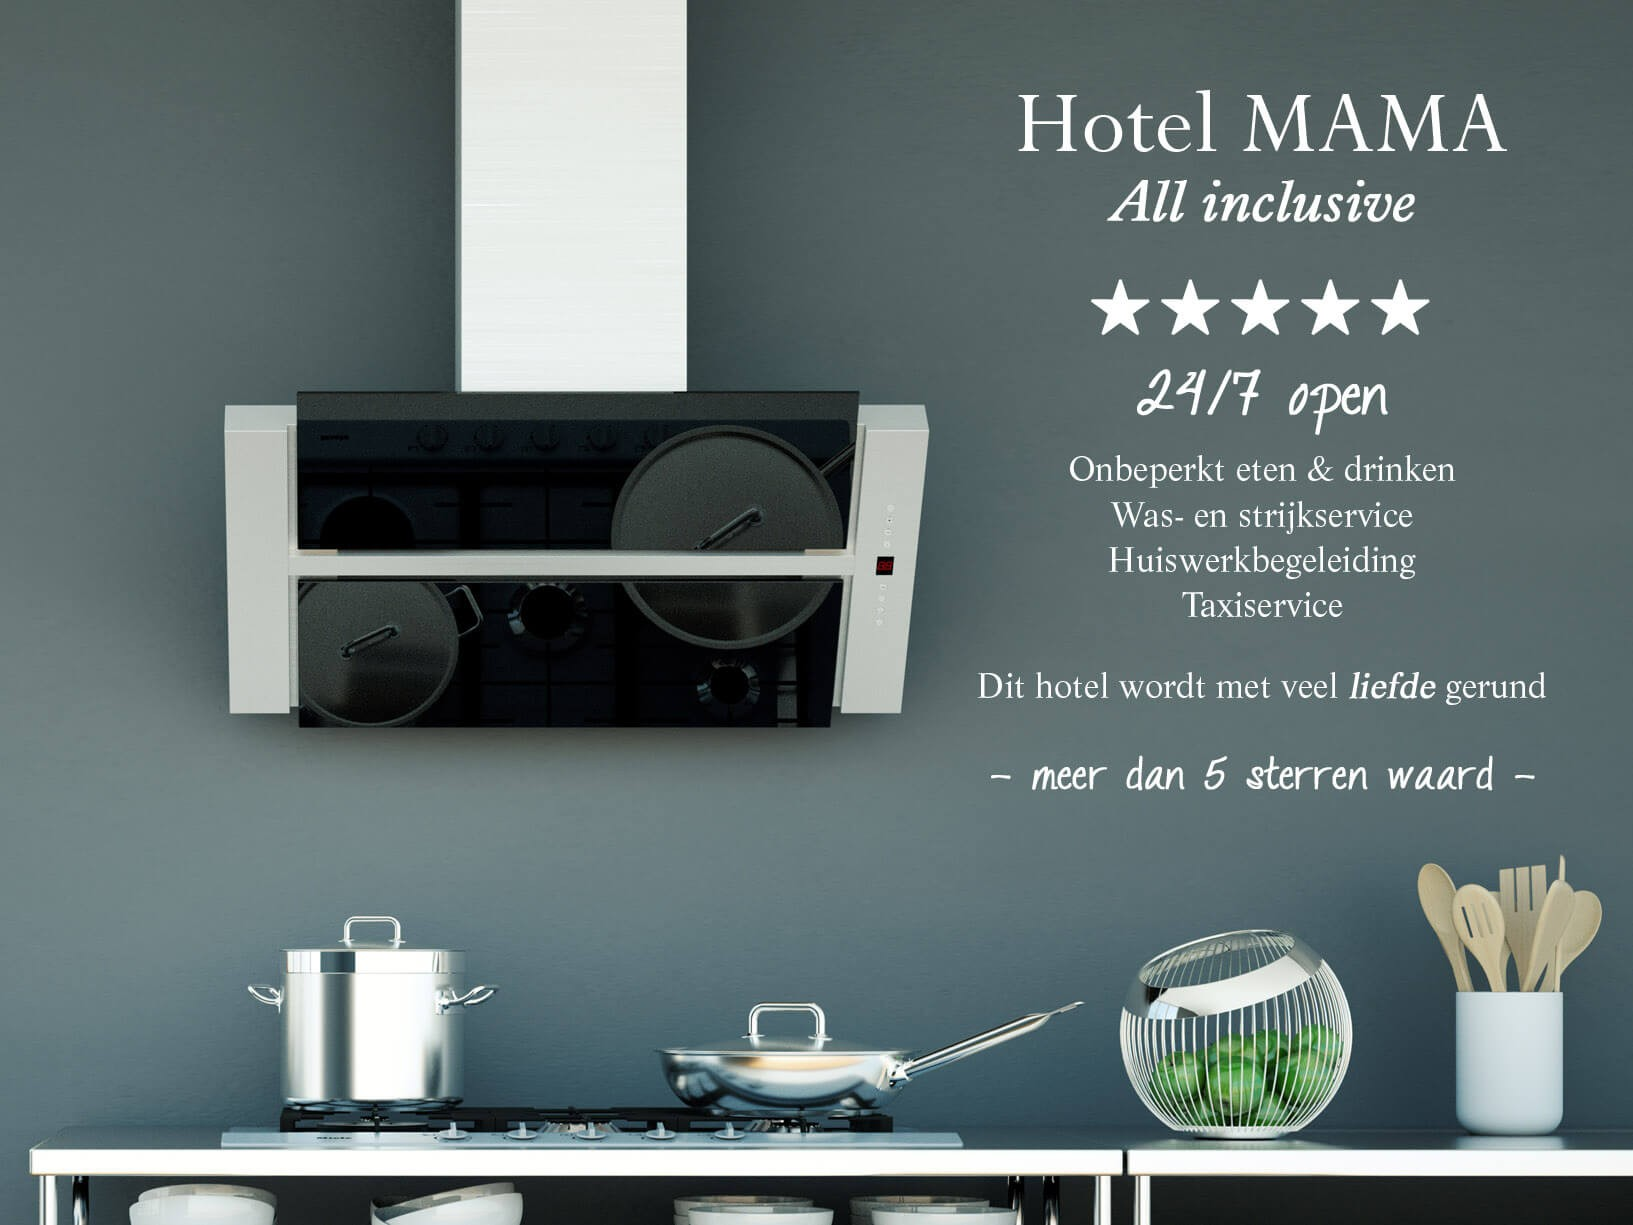 muursticker quothotel mamaquot